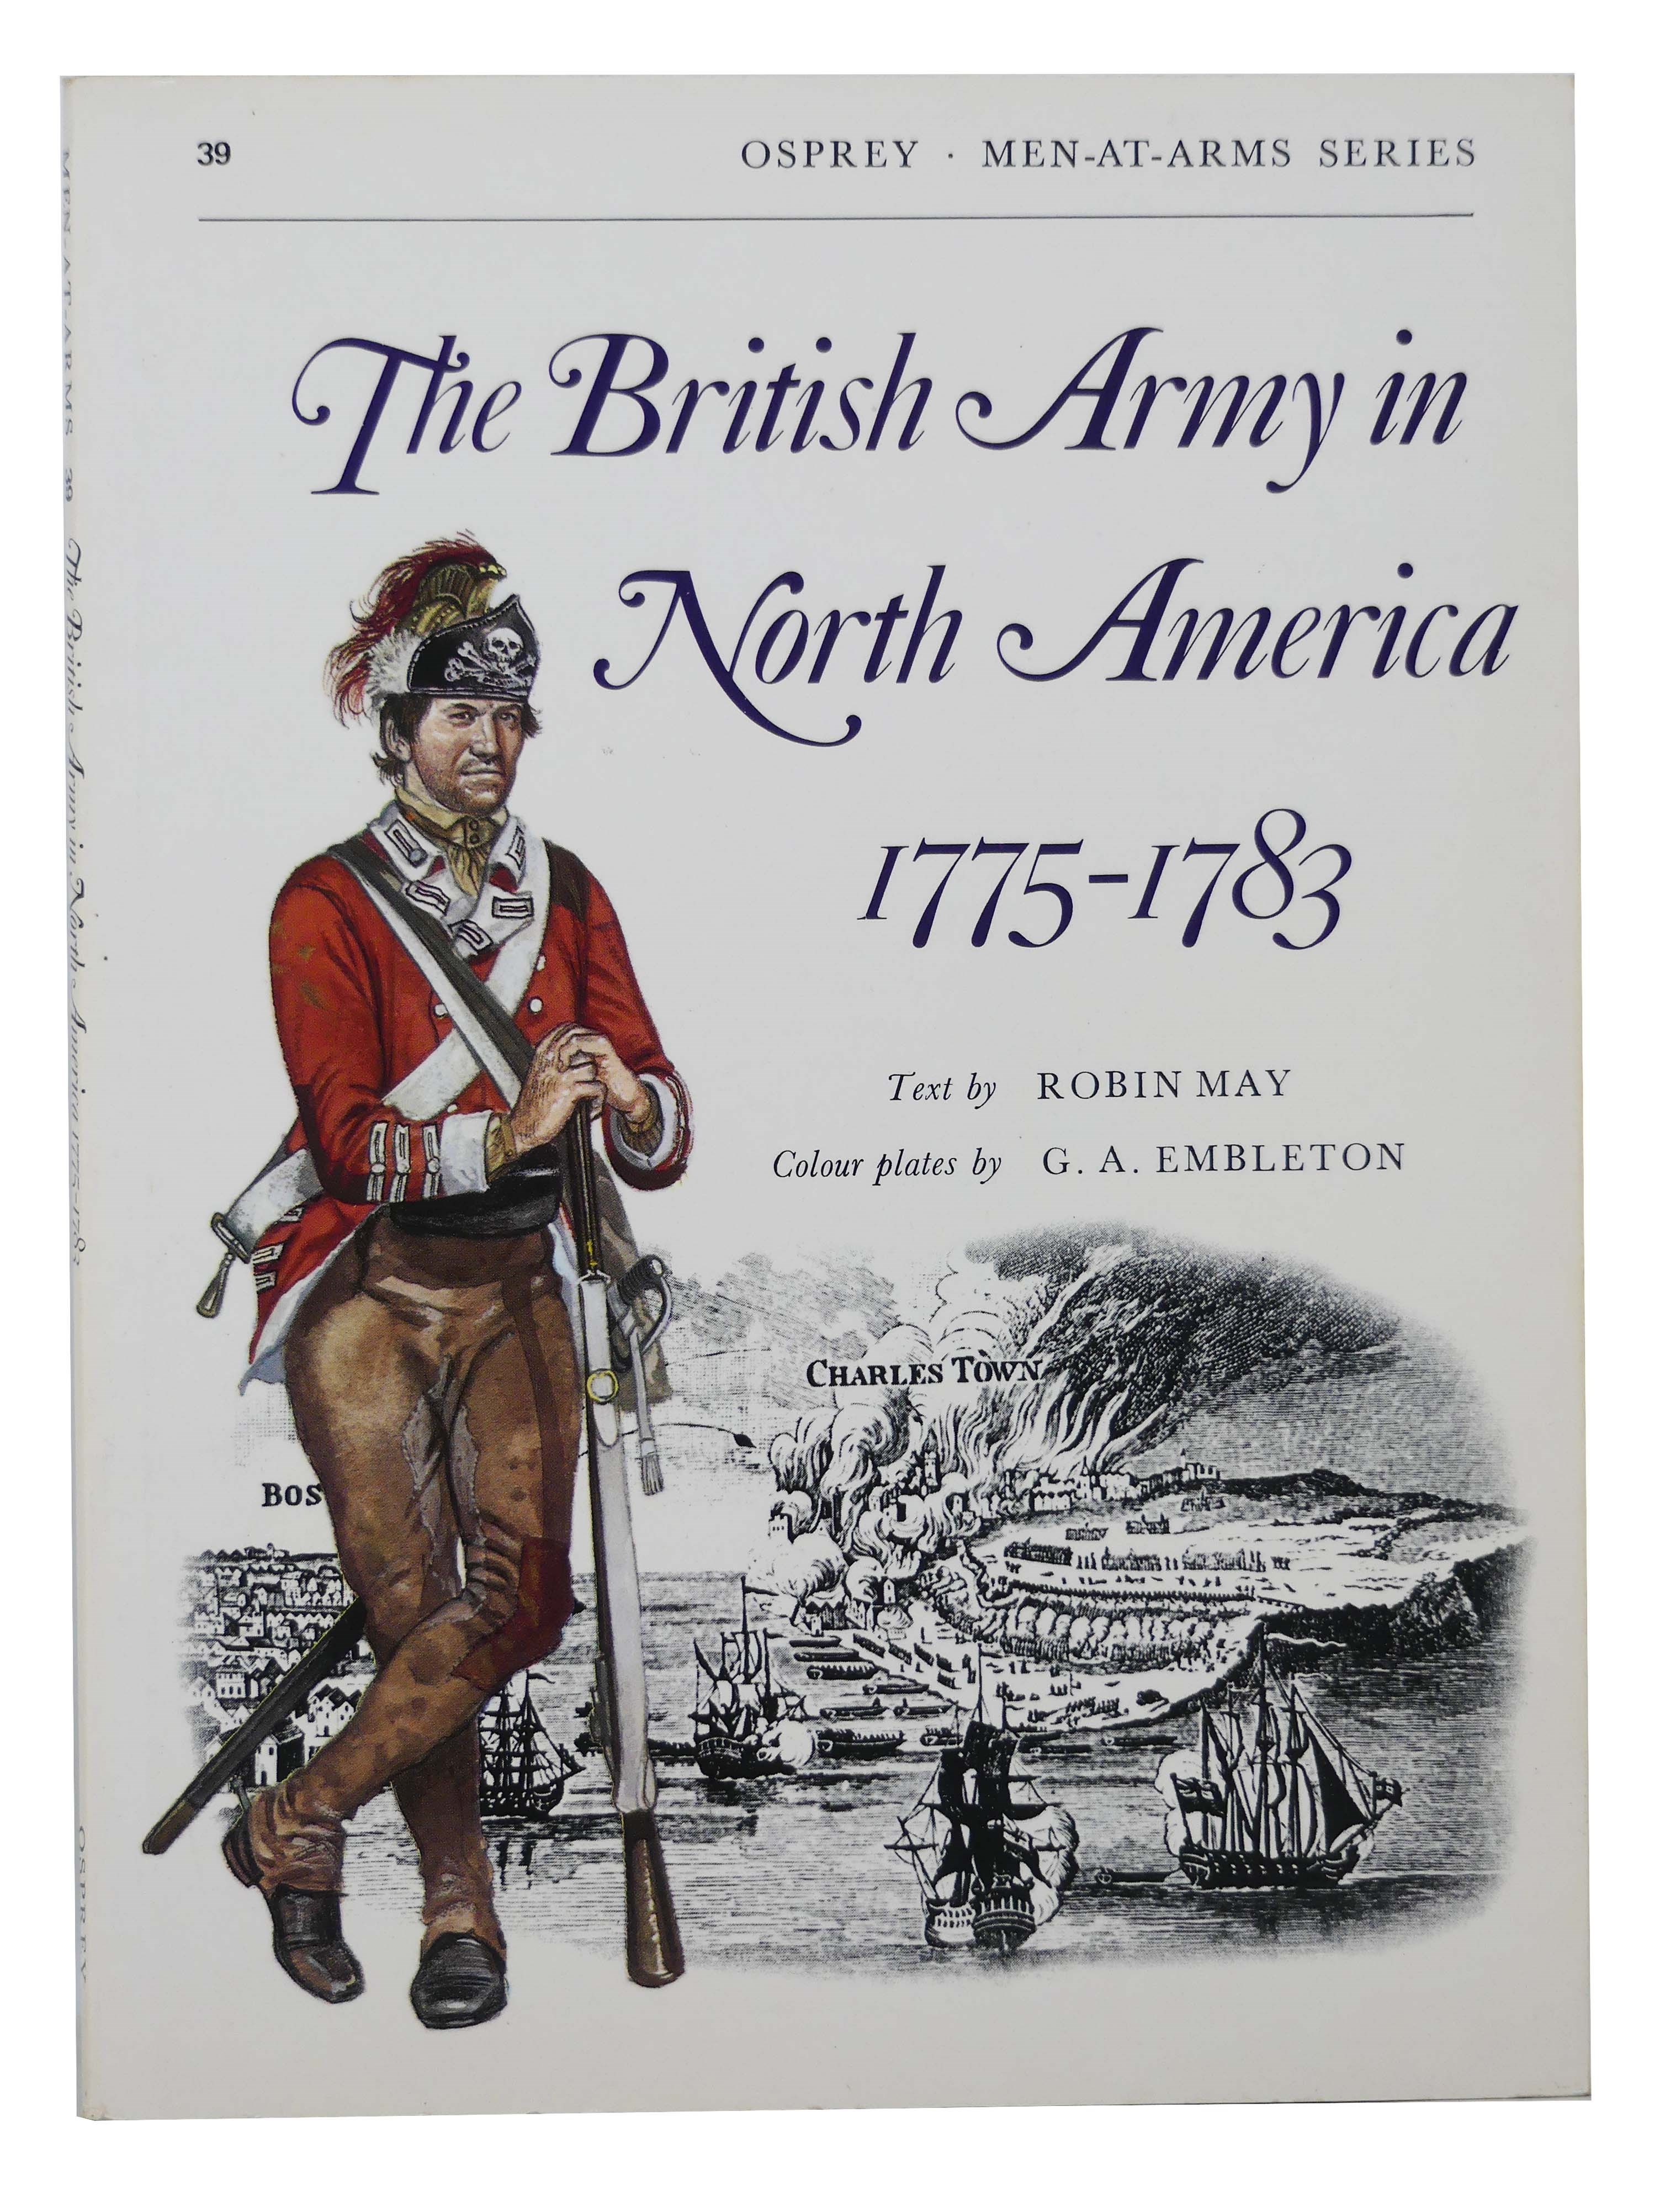 Image for The British Army in North America, 1775-1783 (Opsrey Men-At-Arms Series, No. 39)